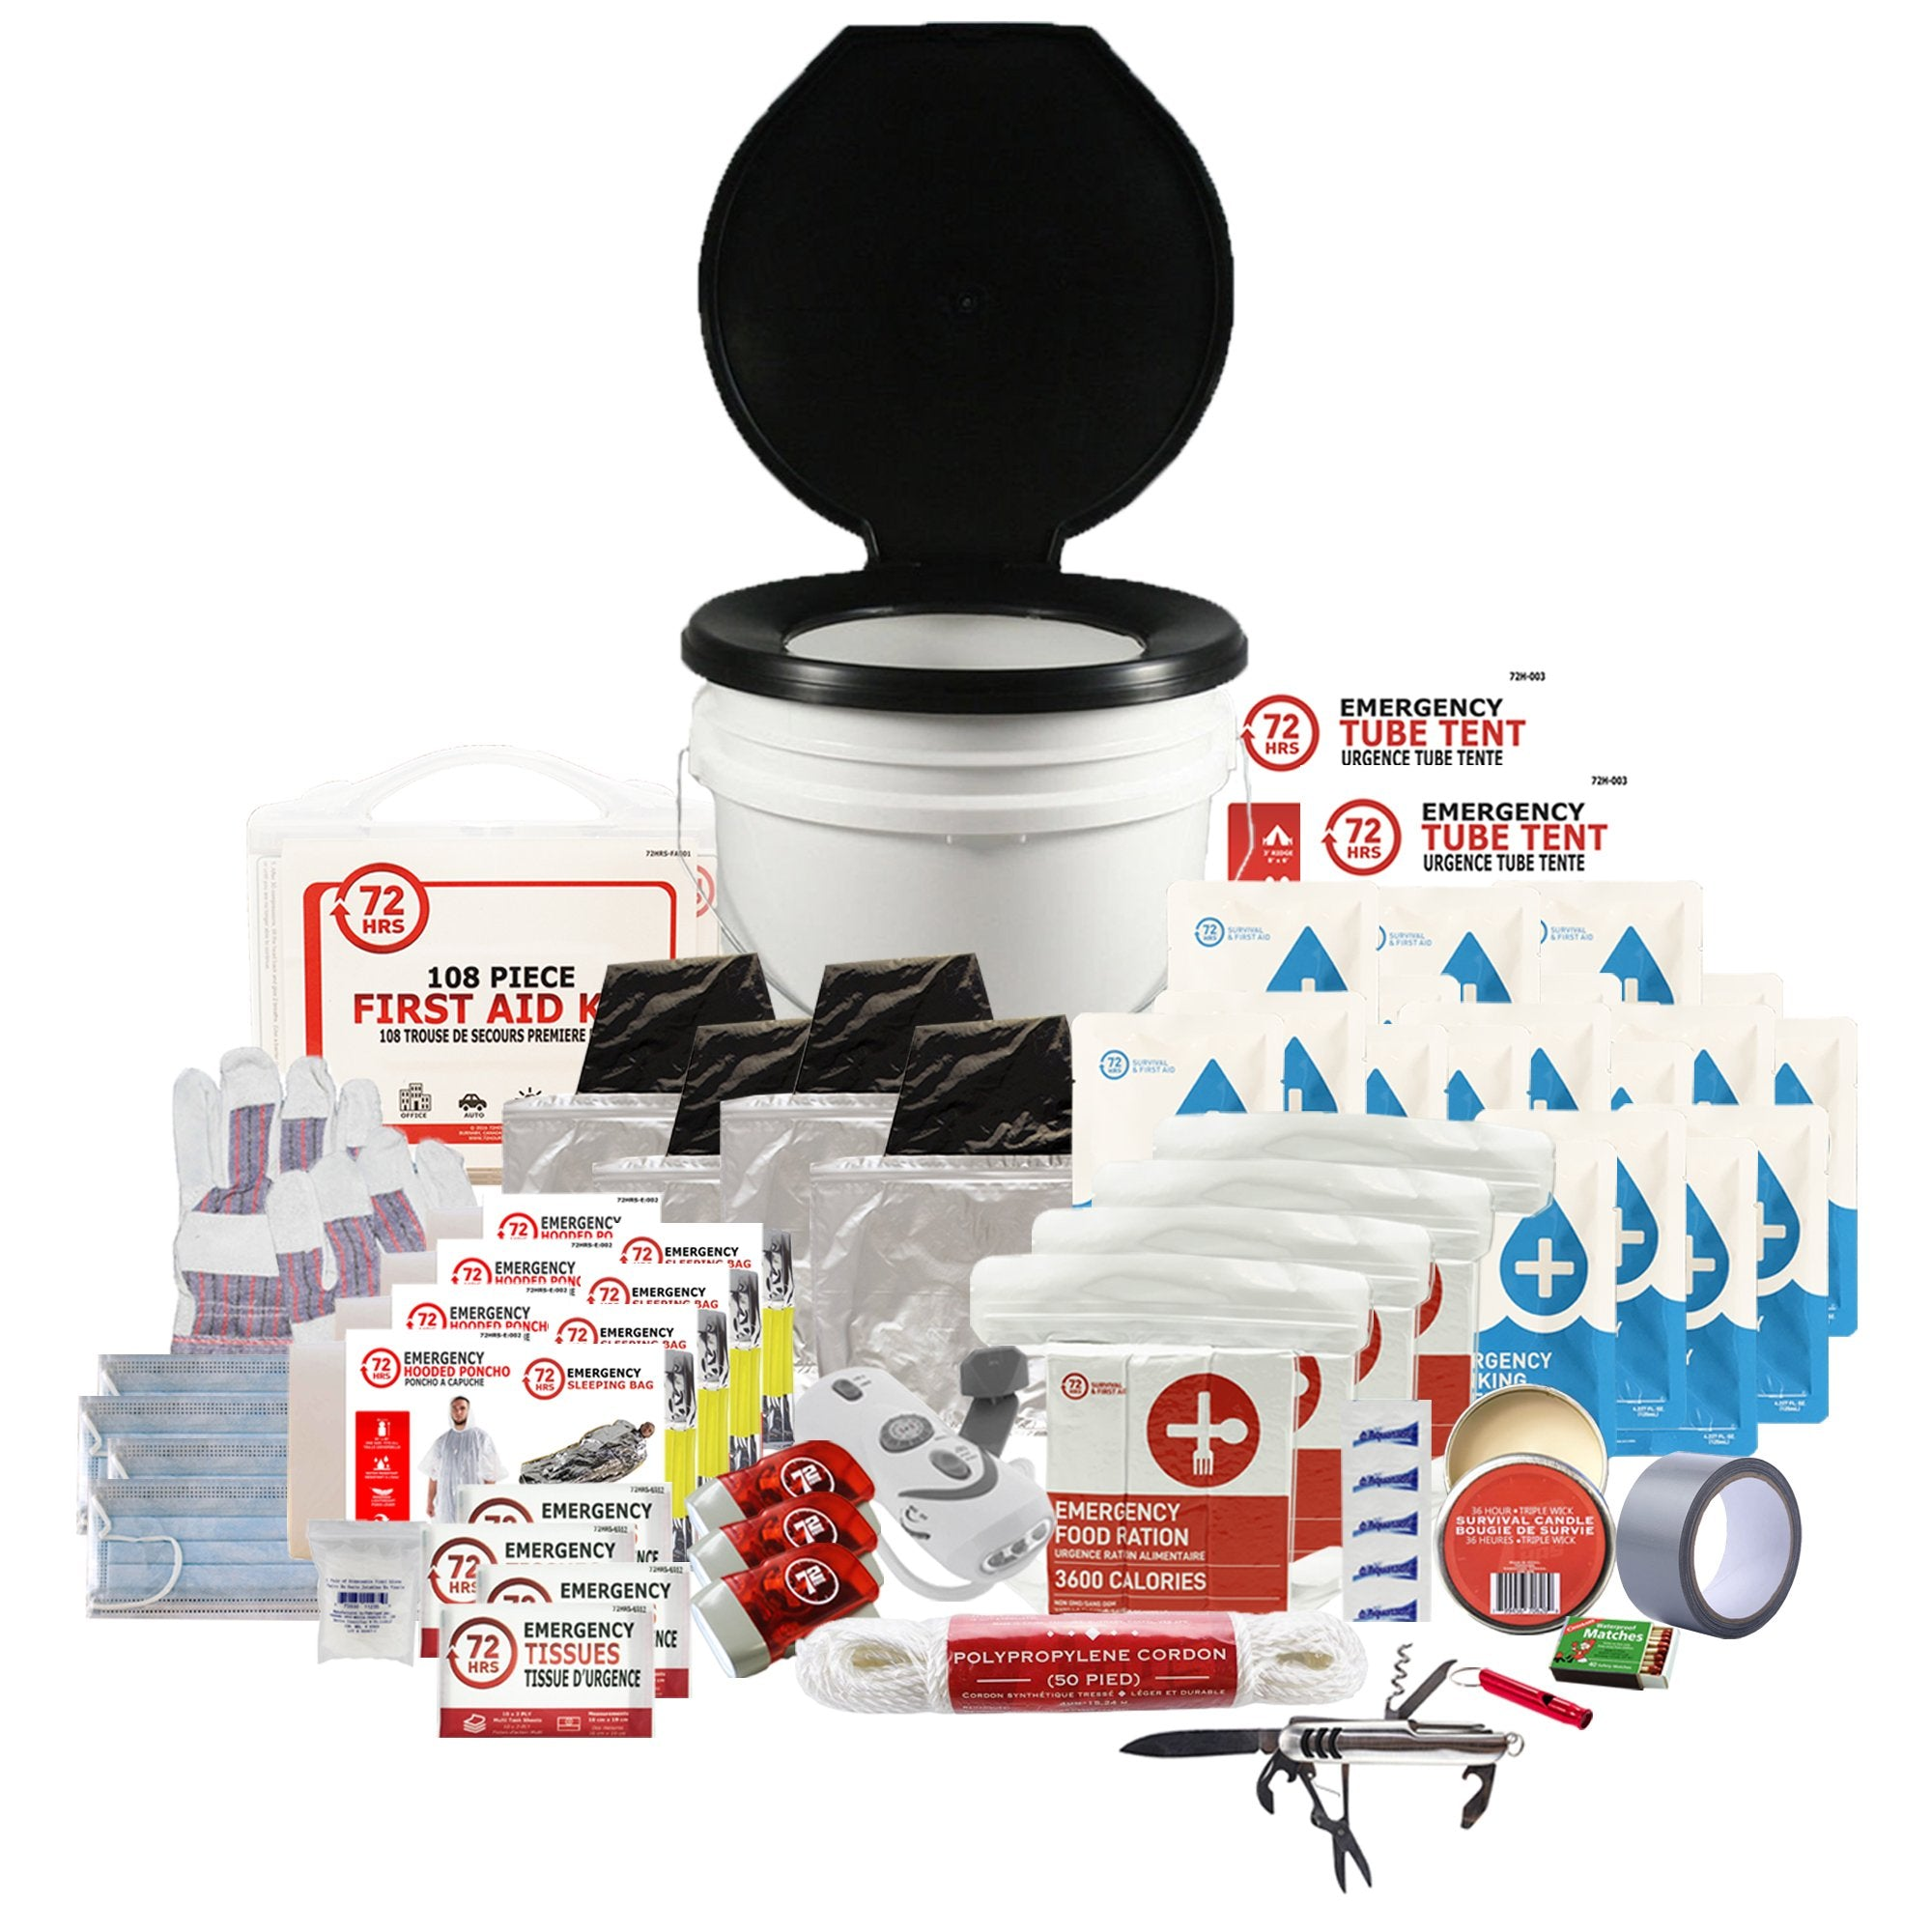 4 Person 72HRS Deluxe Toilet - Emergency Survival Kit